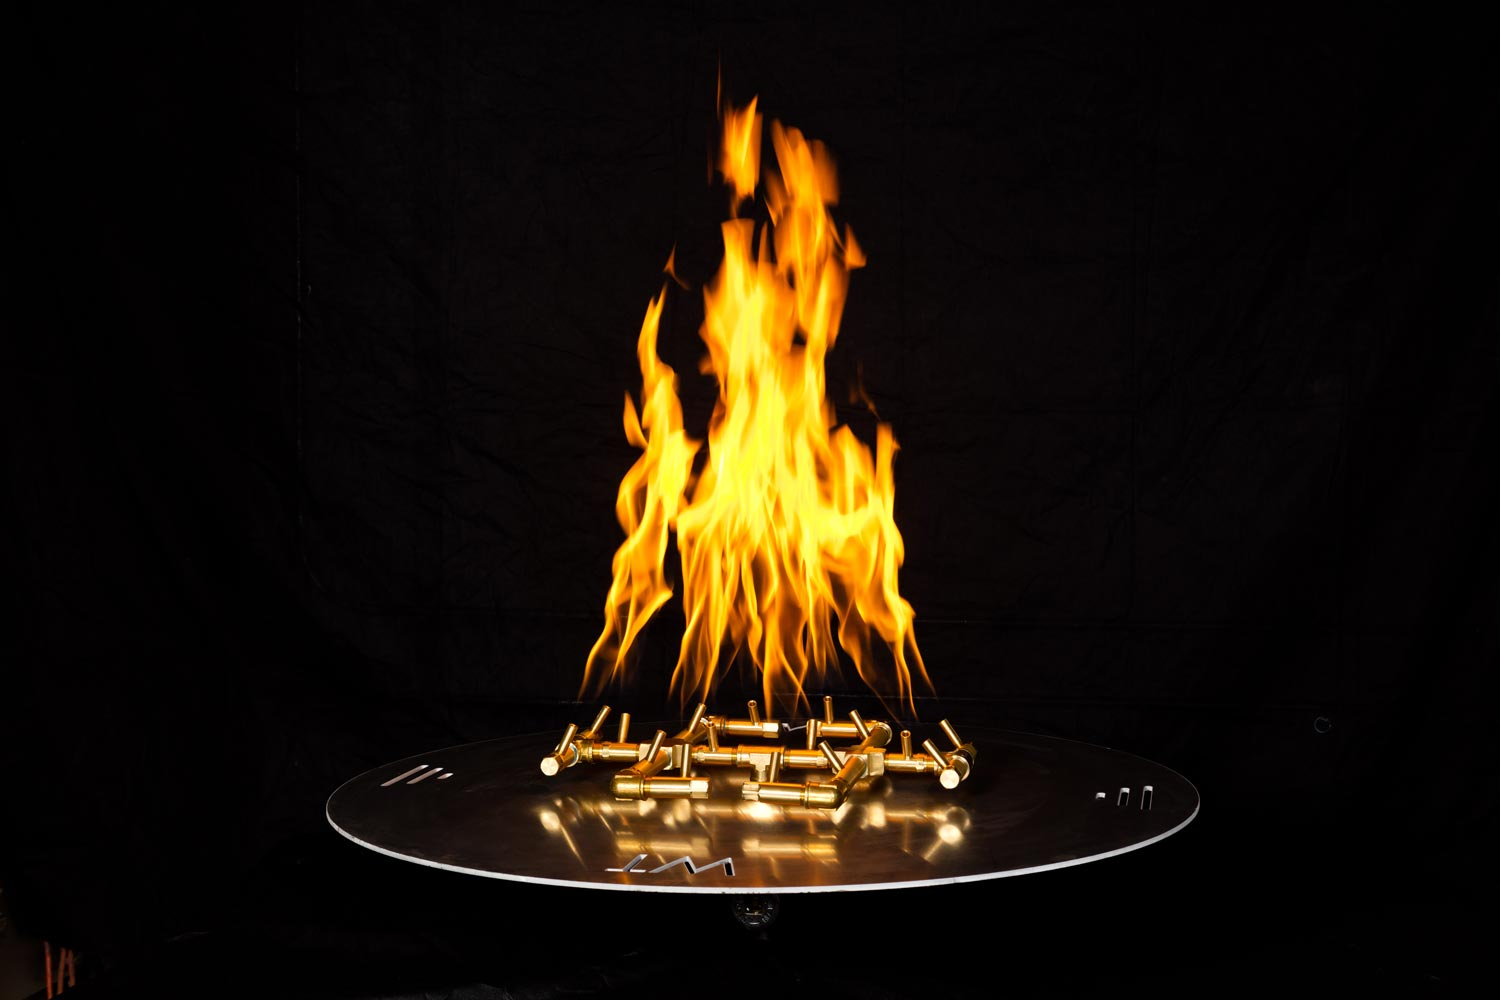 Warming Trends Circular Burner at Chim Chimney Fireplace Pool & Spa